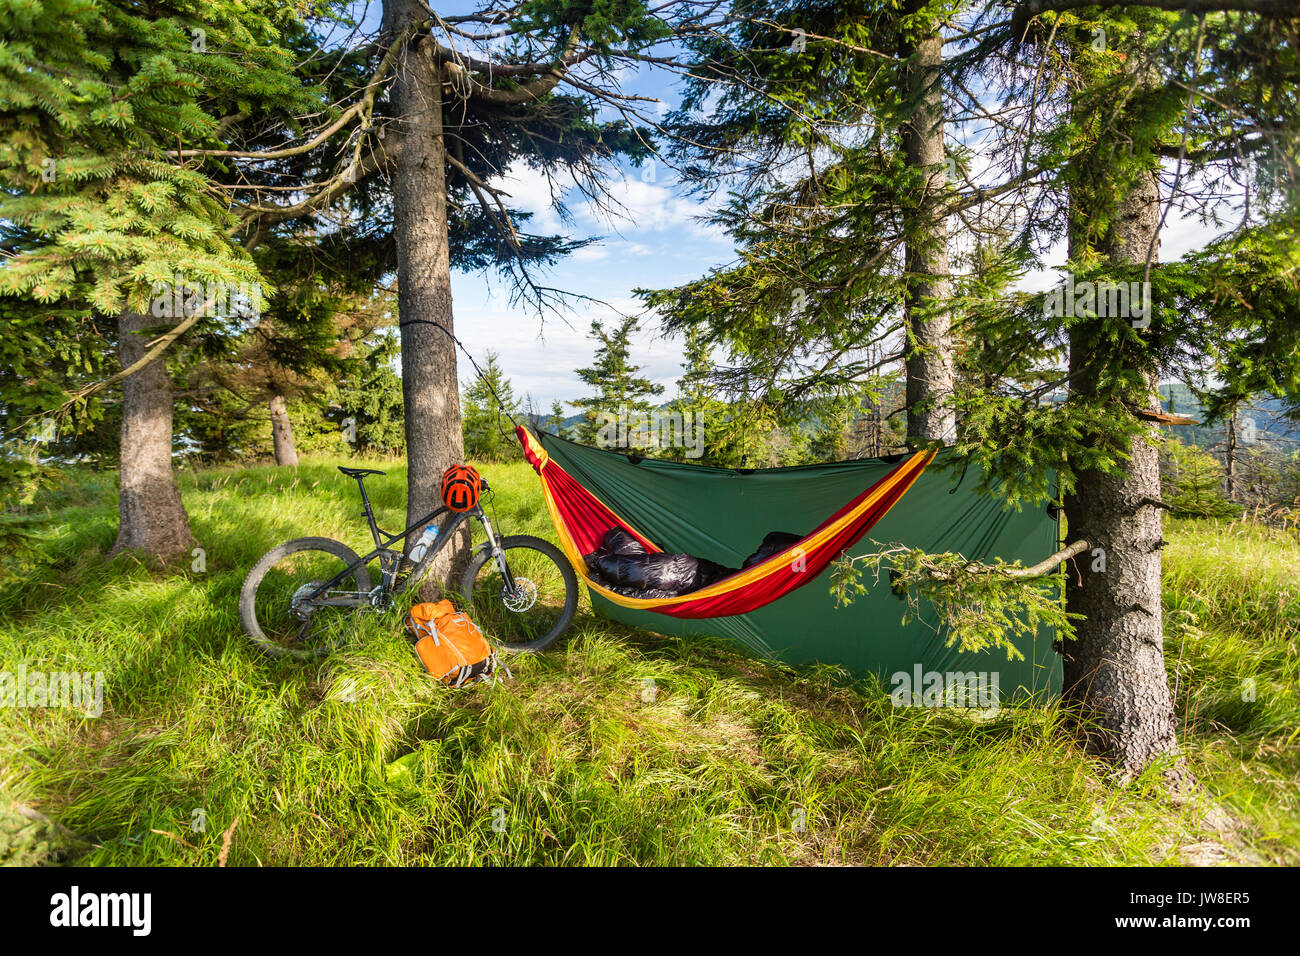 camping in woods with hammock and sleeping bag on mountain biking adventure trip in green mountains camping in woods with hammock and sleeping bag on mountain biking      rh   alamy